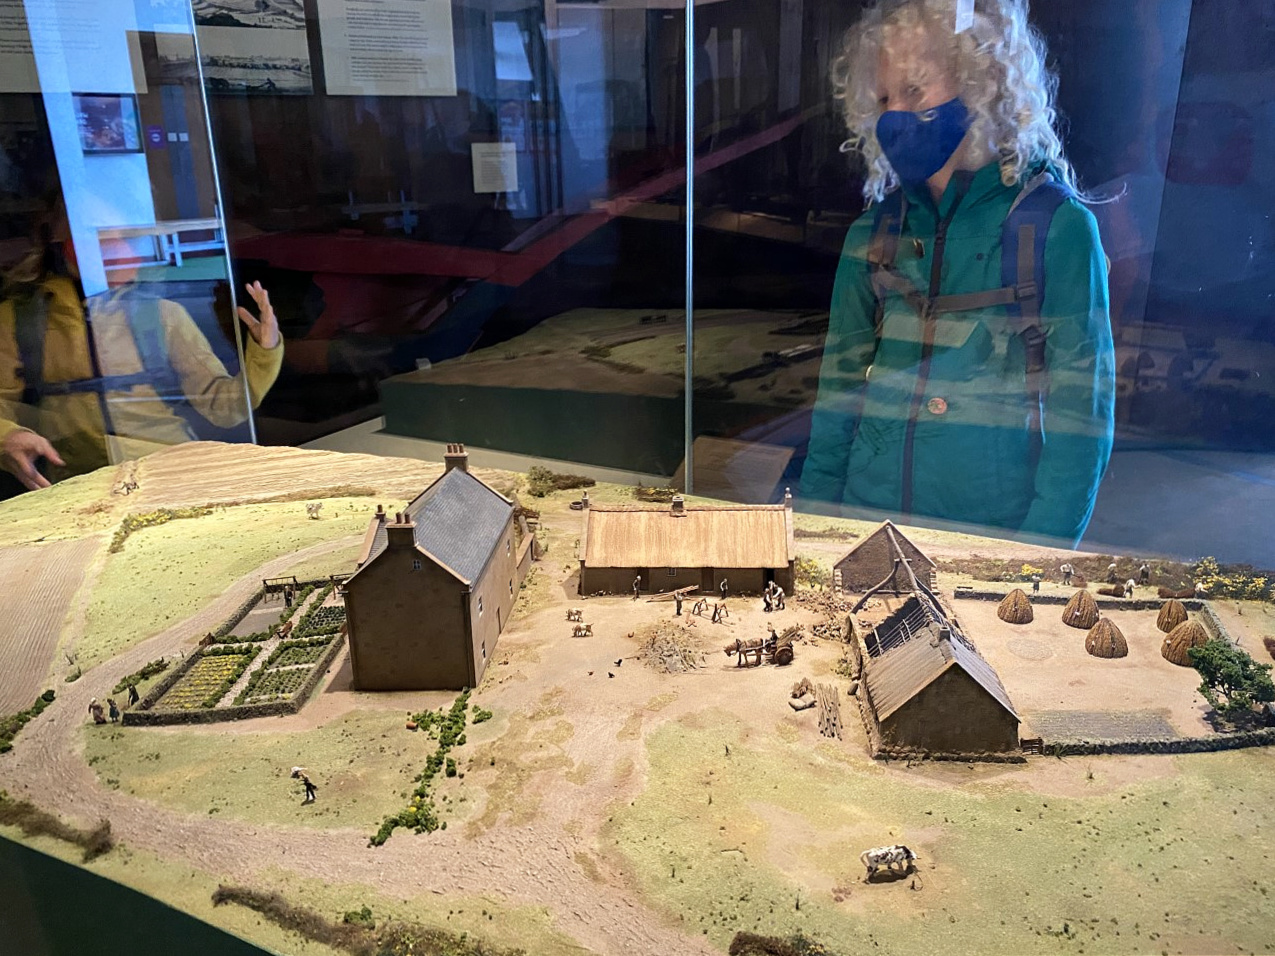 child looking at a model farm in museum